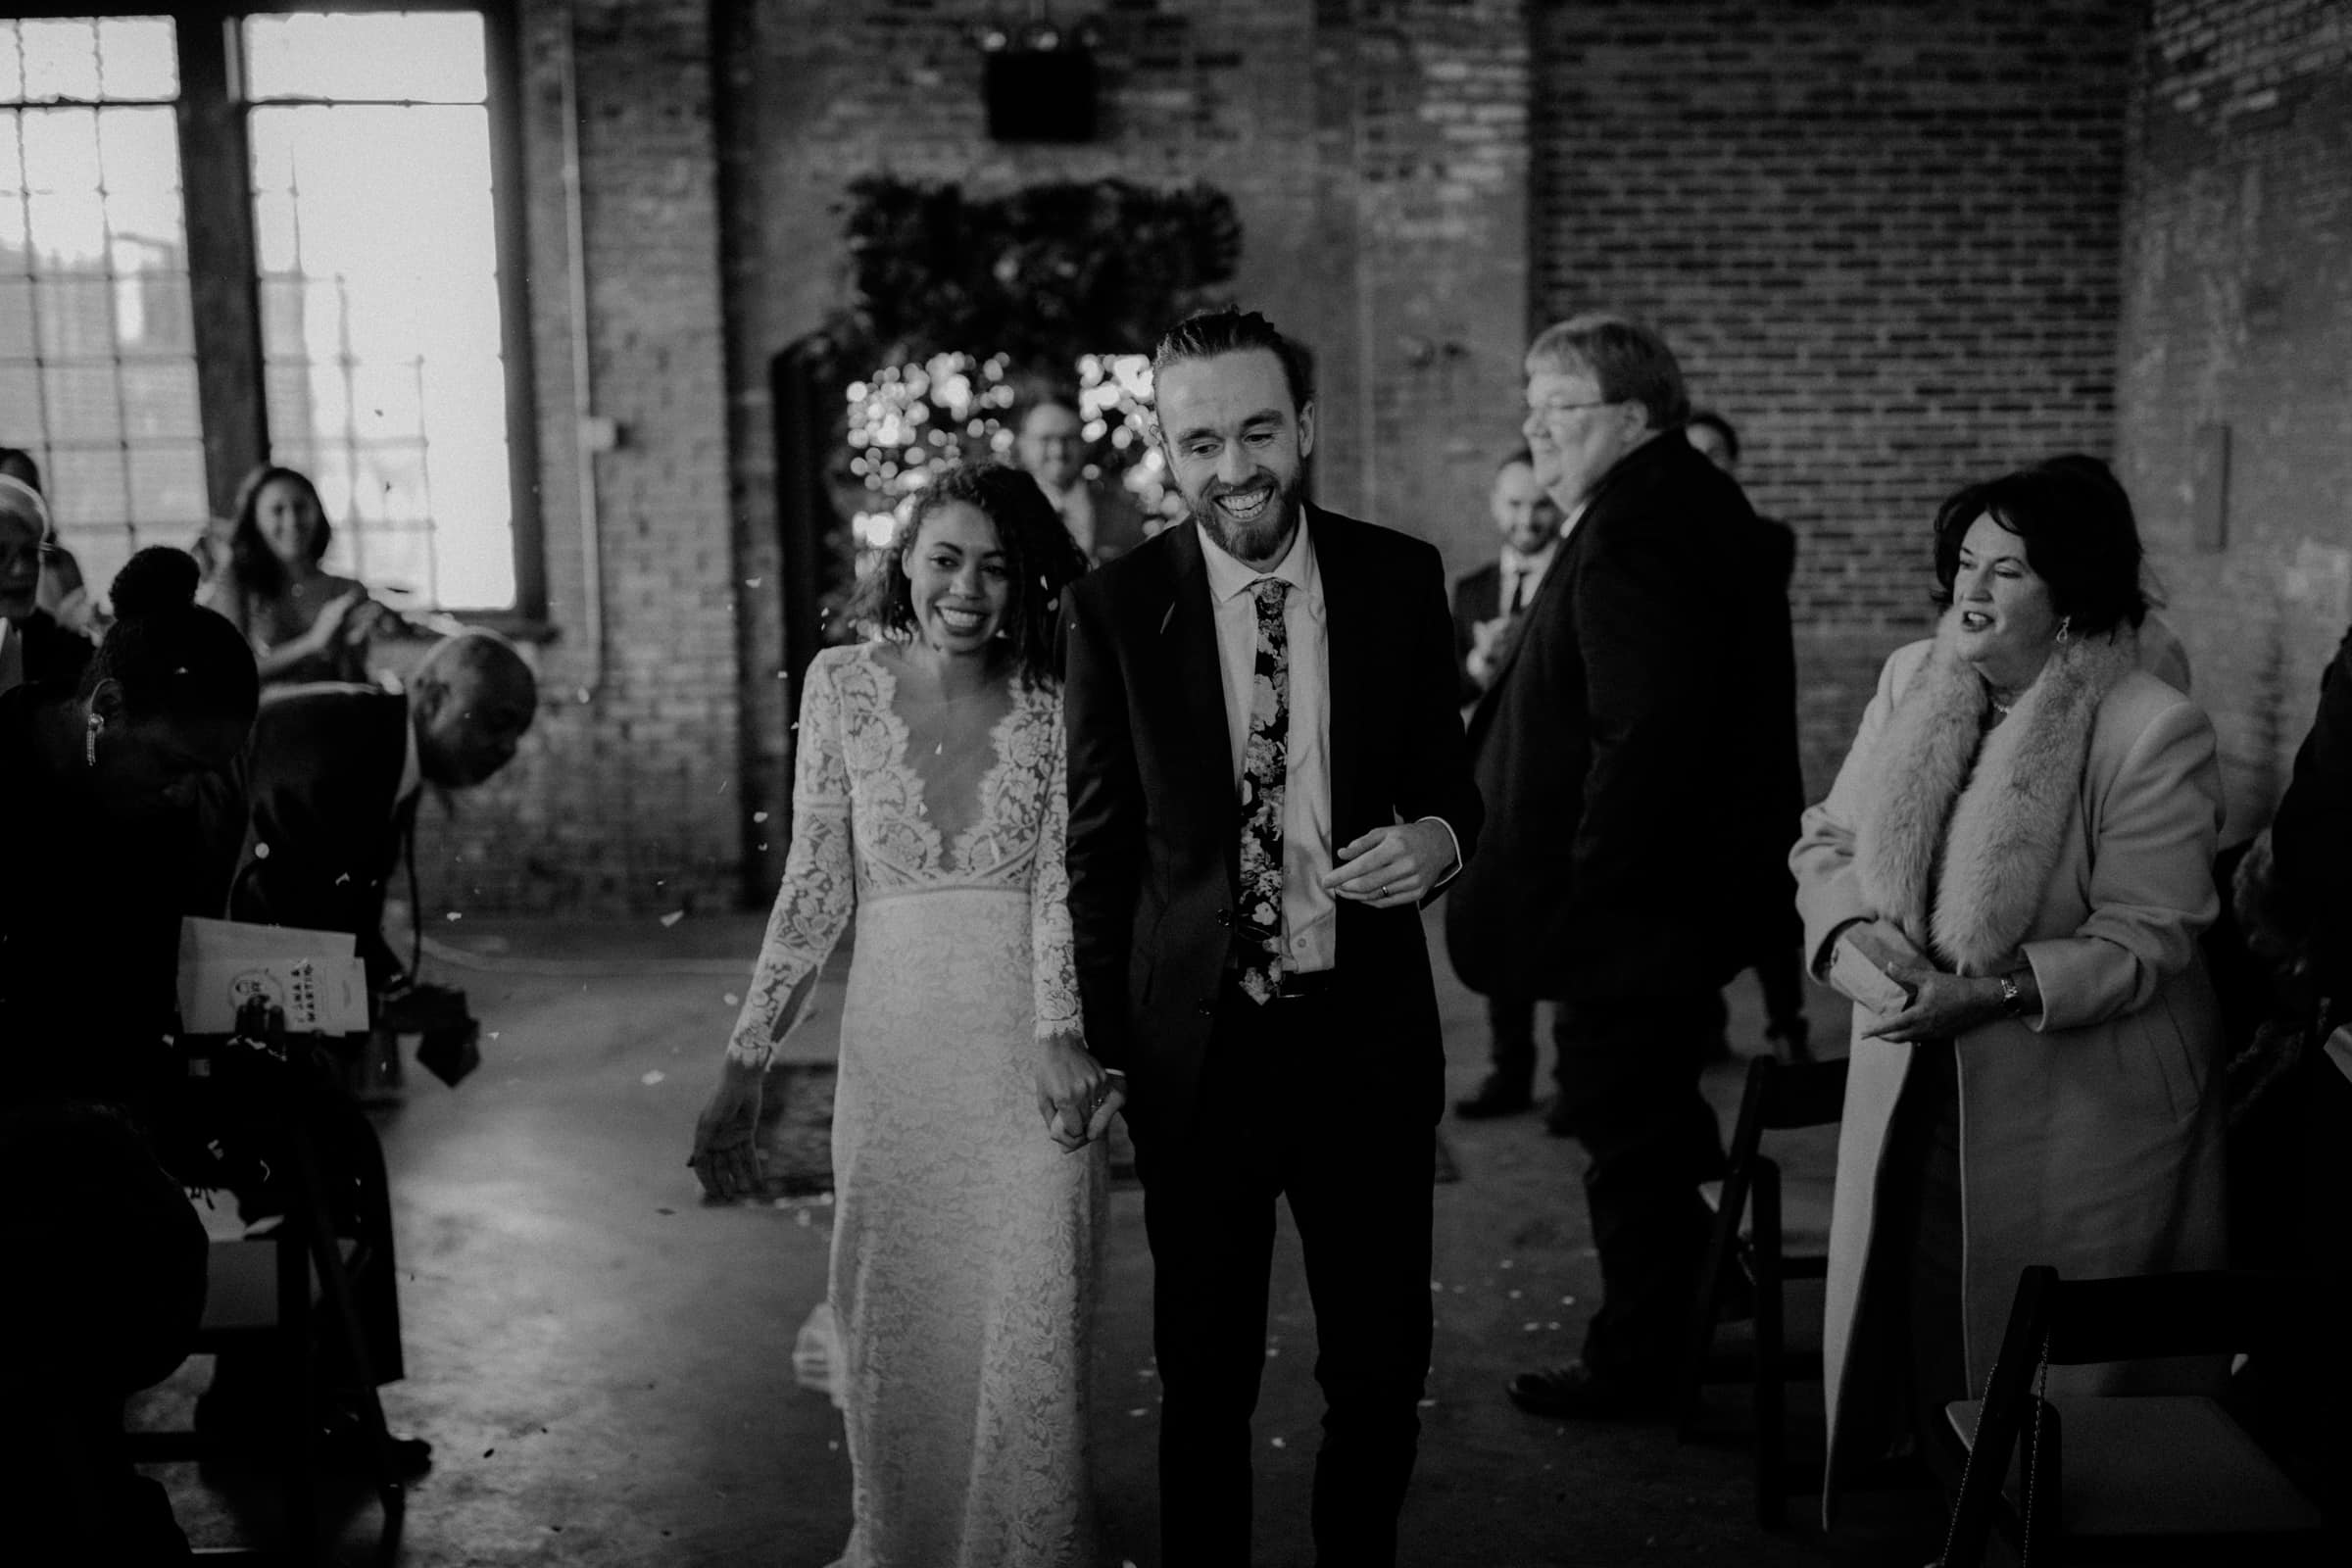 A wedding couple is walking back the aisle together.